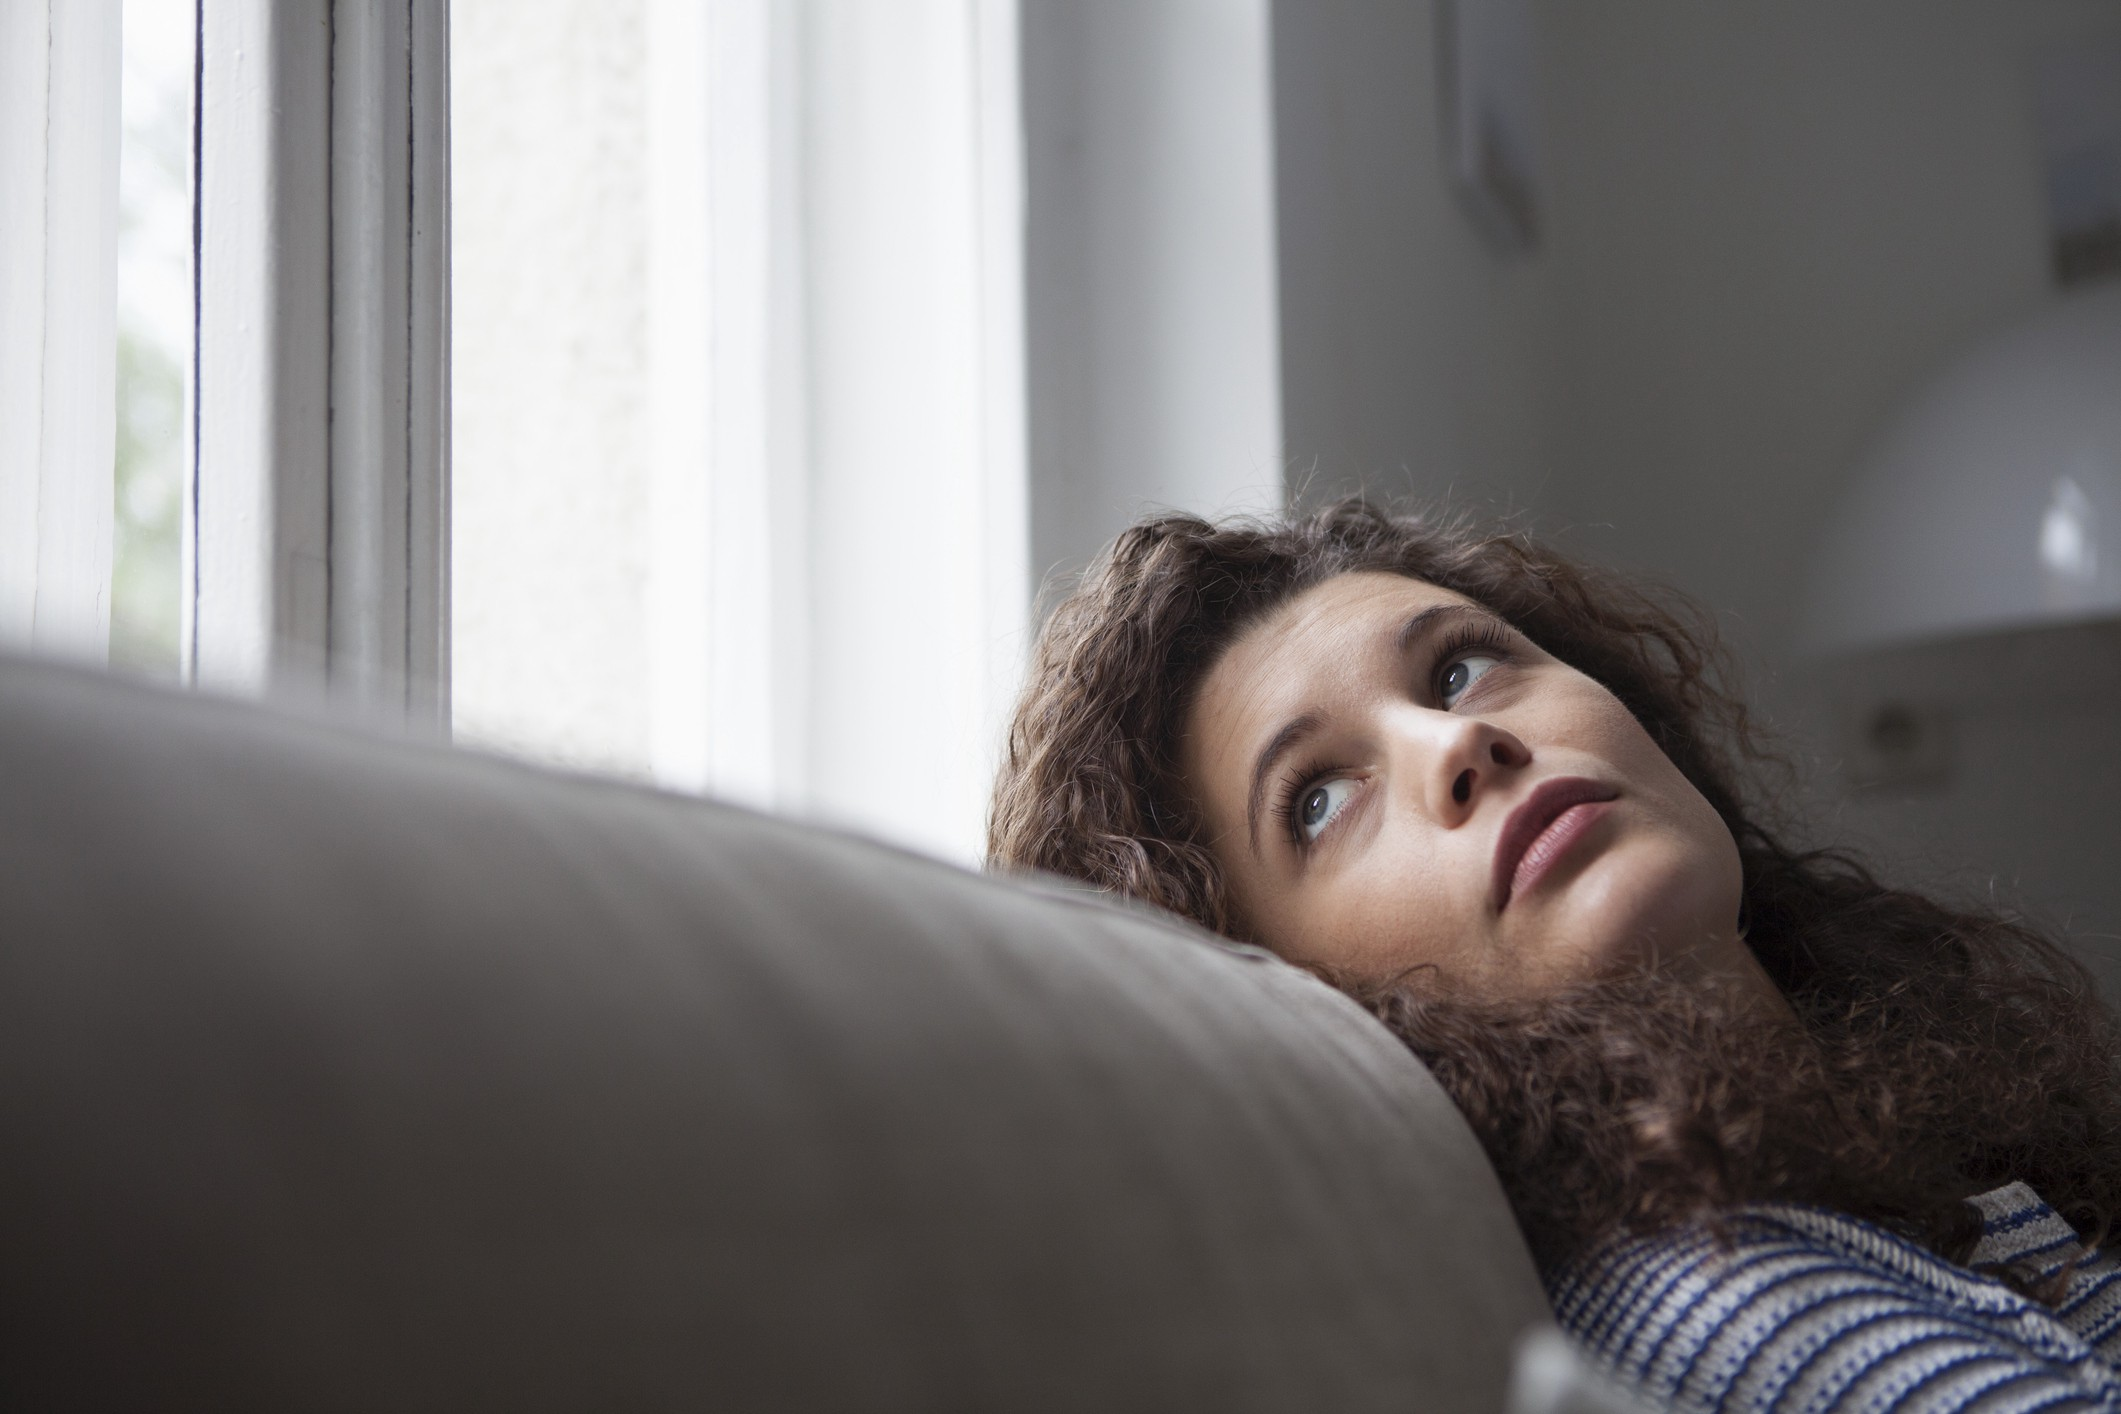 A photo of an annoyed woman looking out the window.